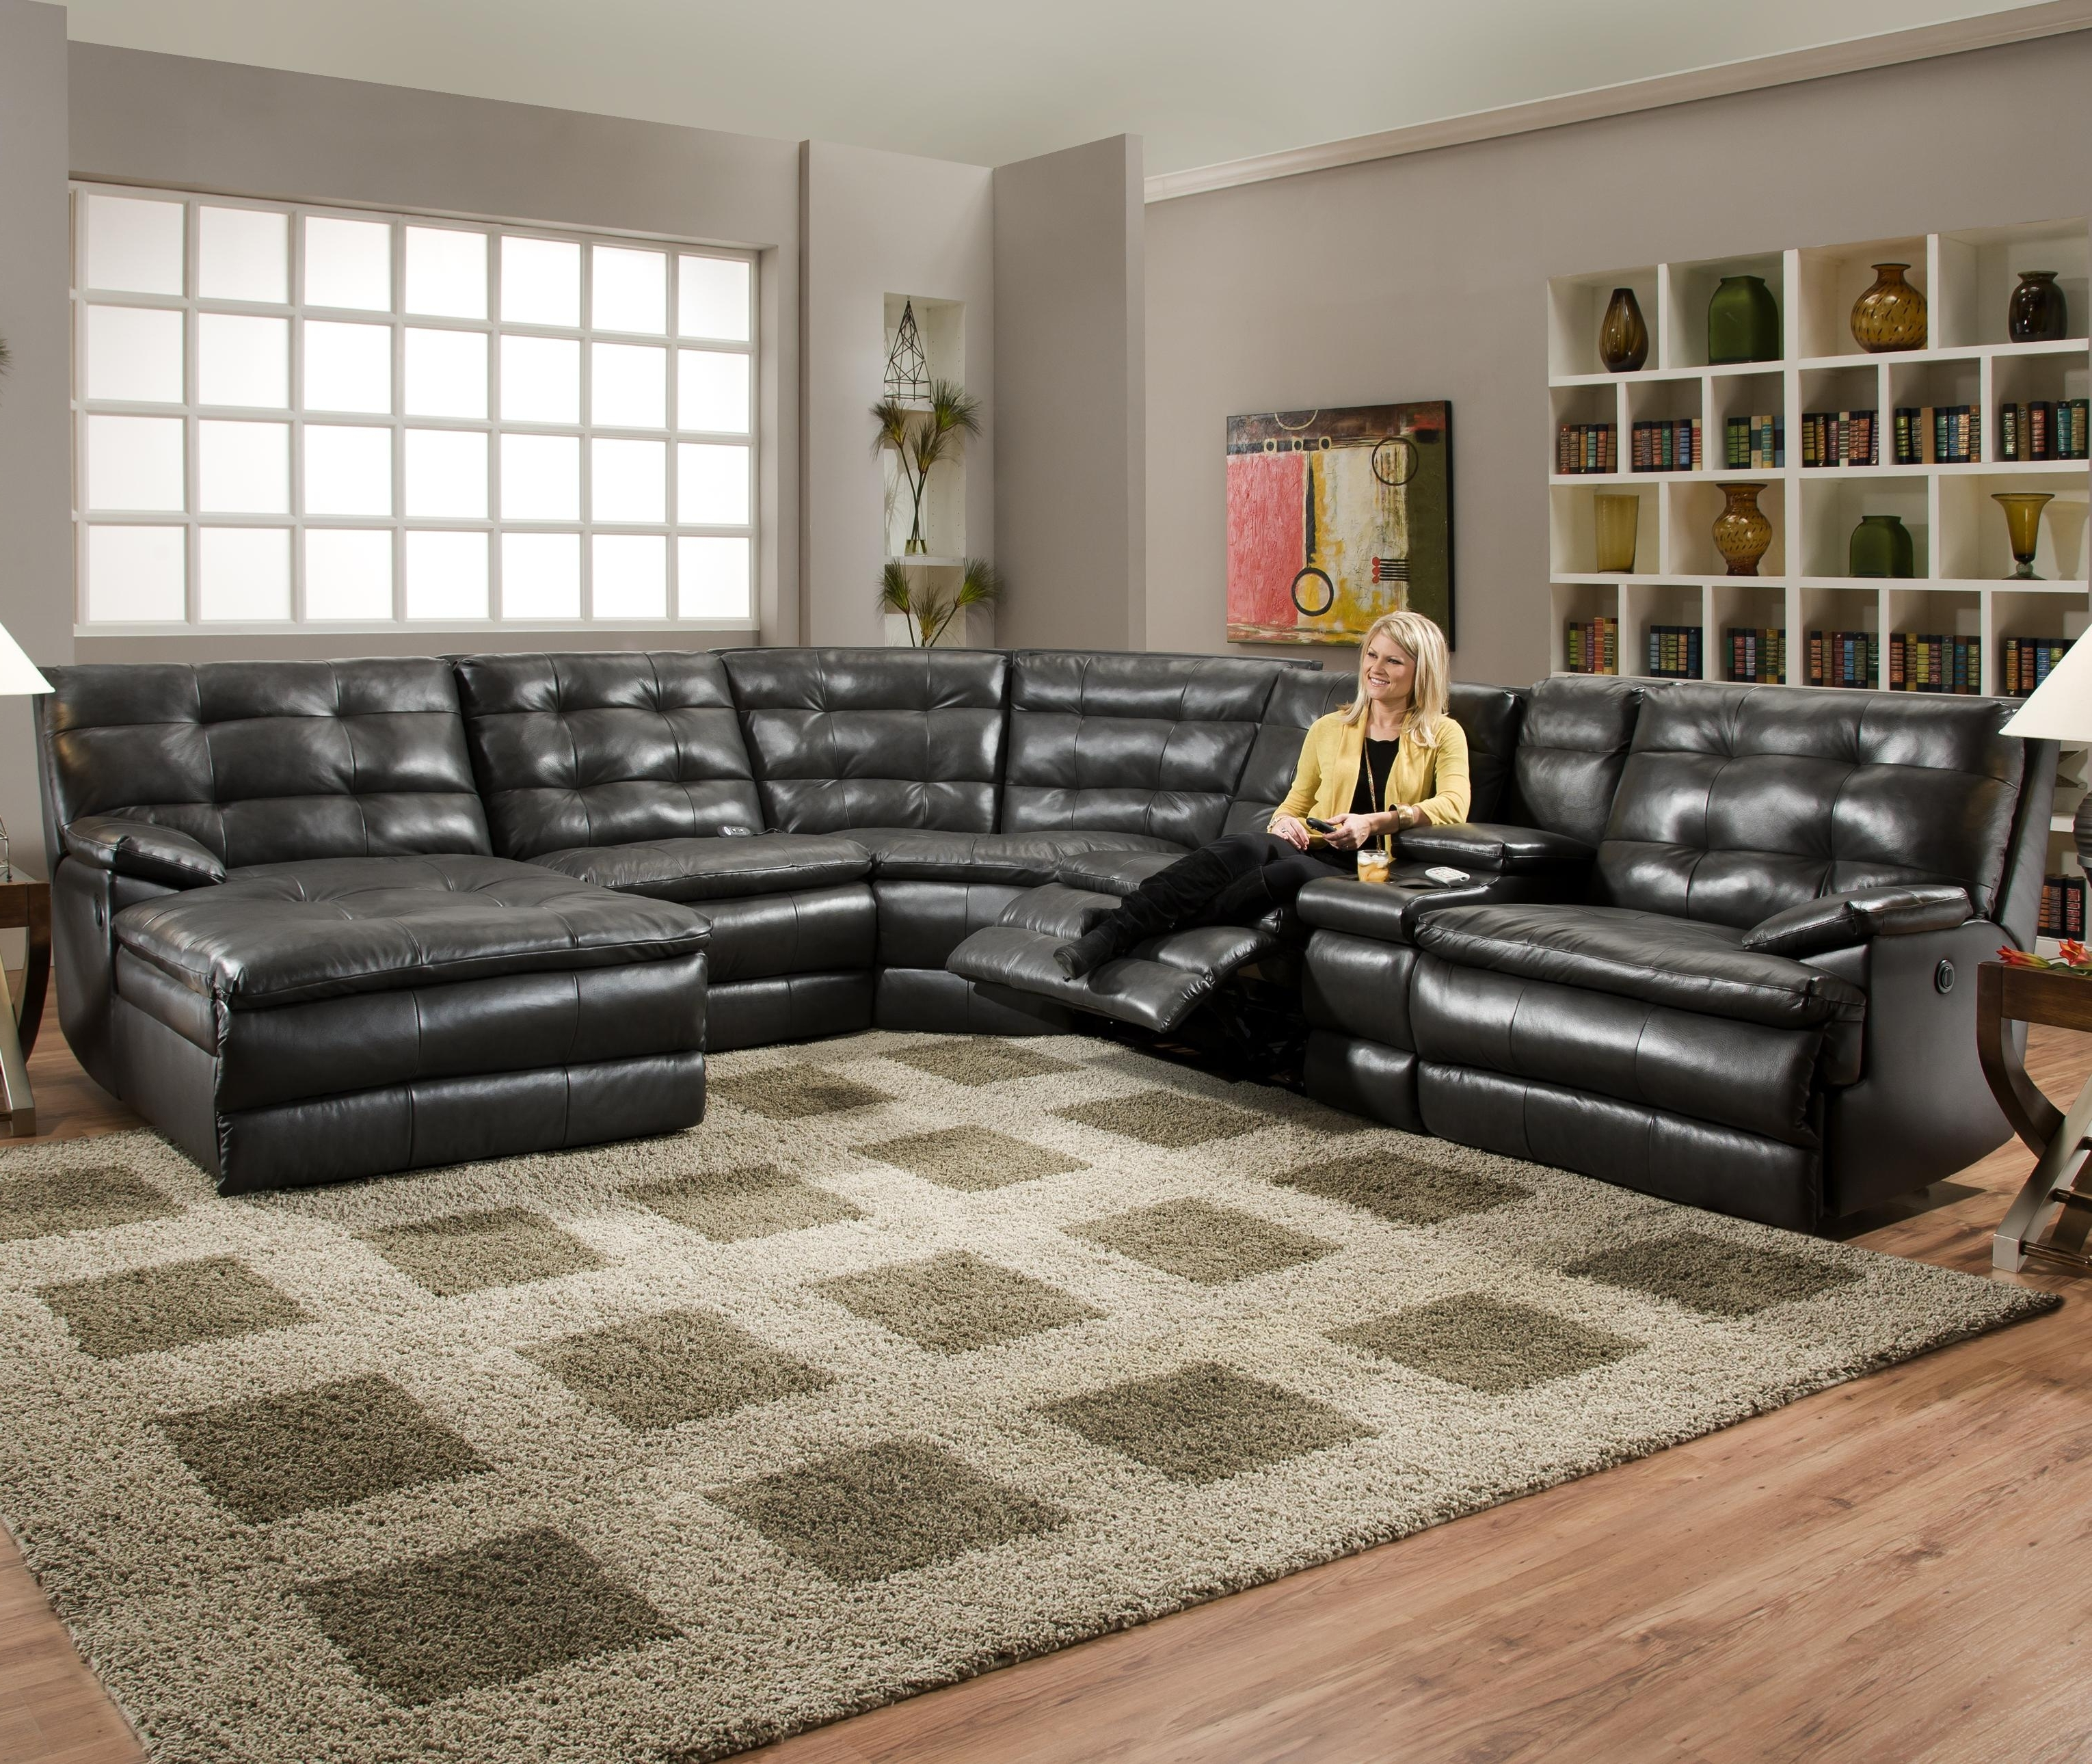 Reclining Sectional Sofas With Regard To Current Luxurious Tufted Leather Sectional Sofa In Classy Black Color With (View 17 of 20)